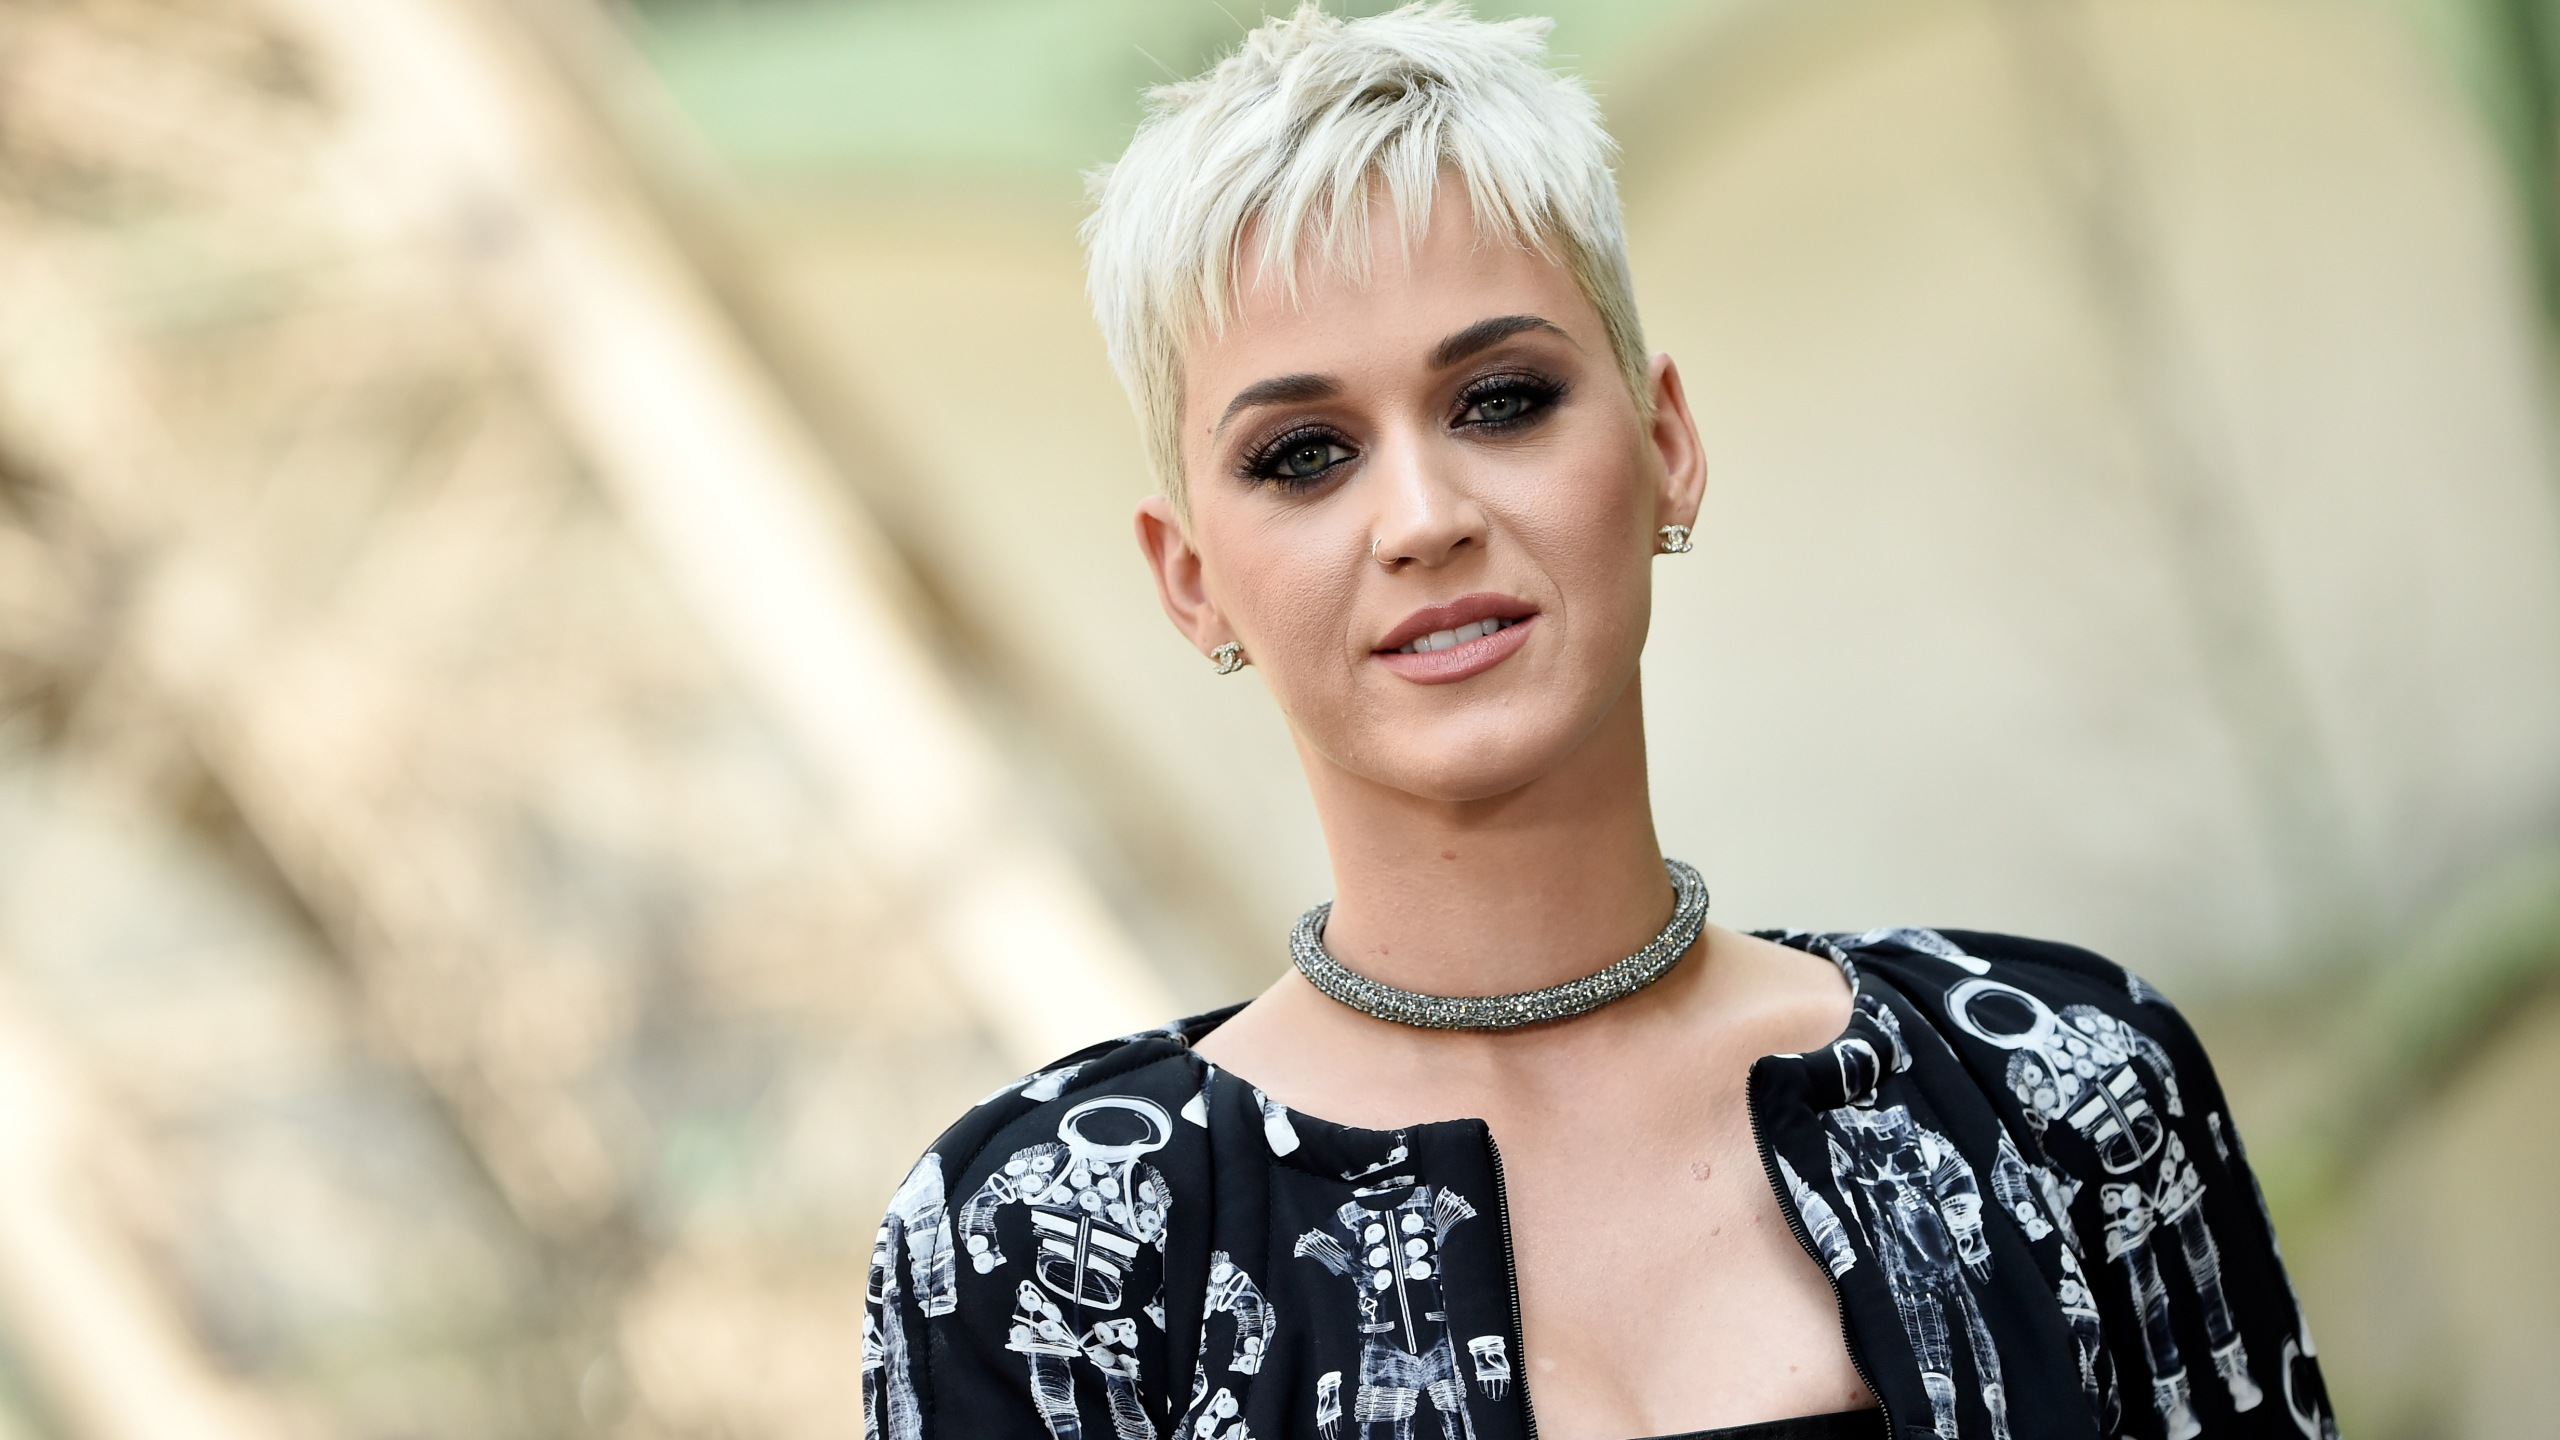 Katy Perry attends a Chanel Haute Couture fashion show in Paris on July 4, 2017. (Credit: Pascal Le Segretain / Getty Images)